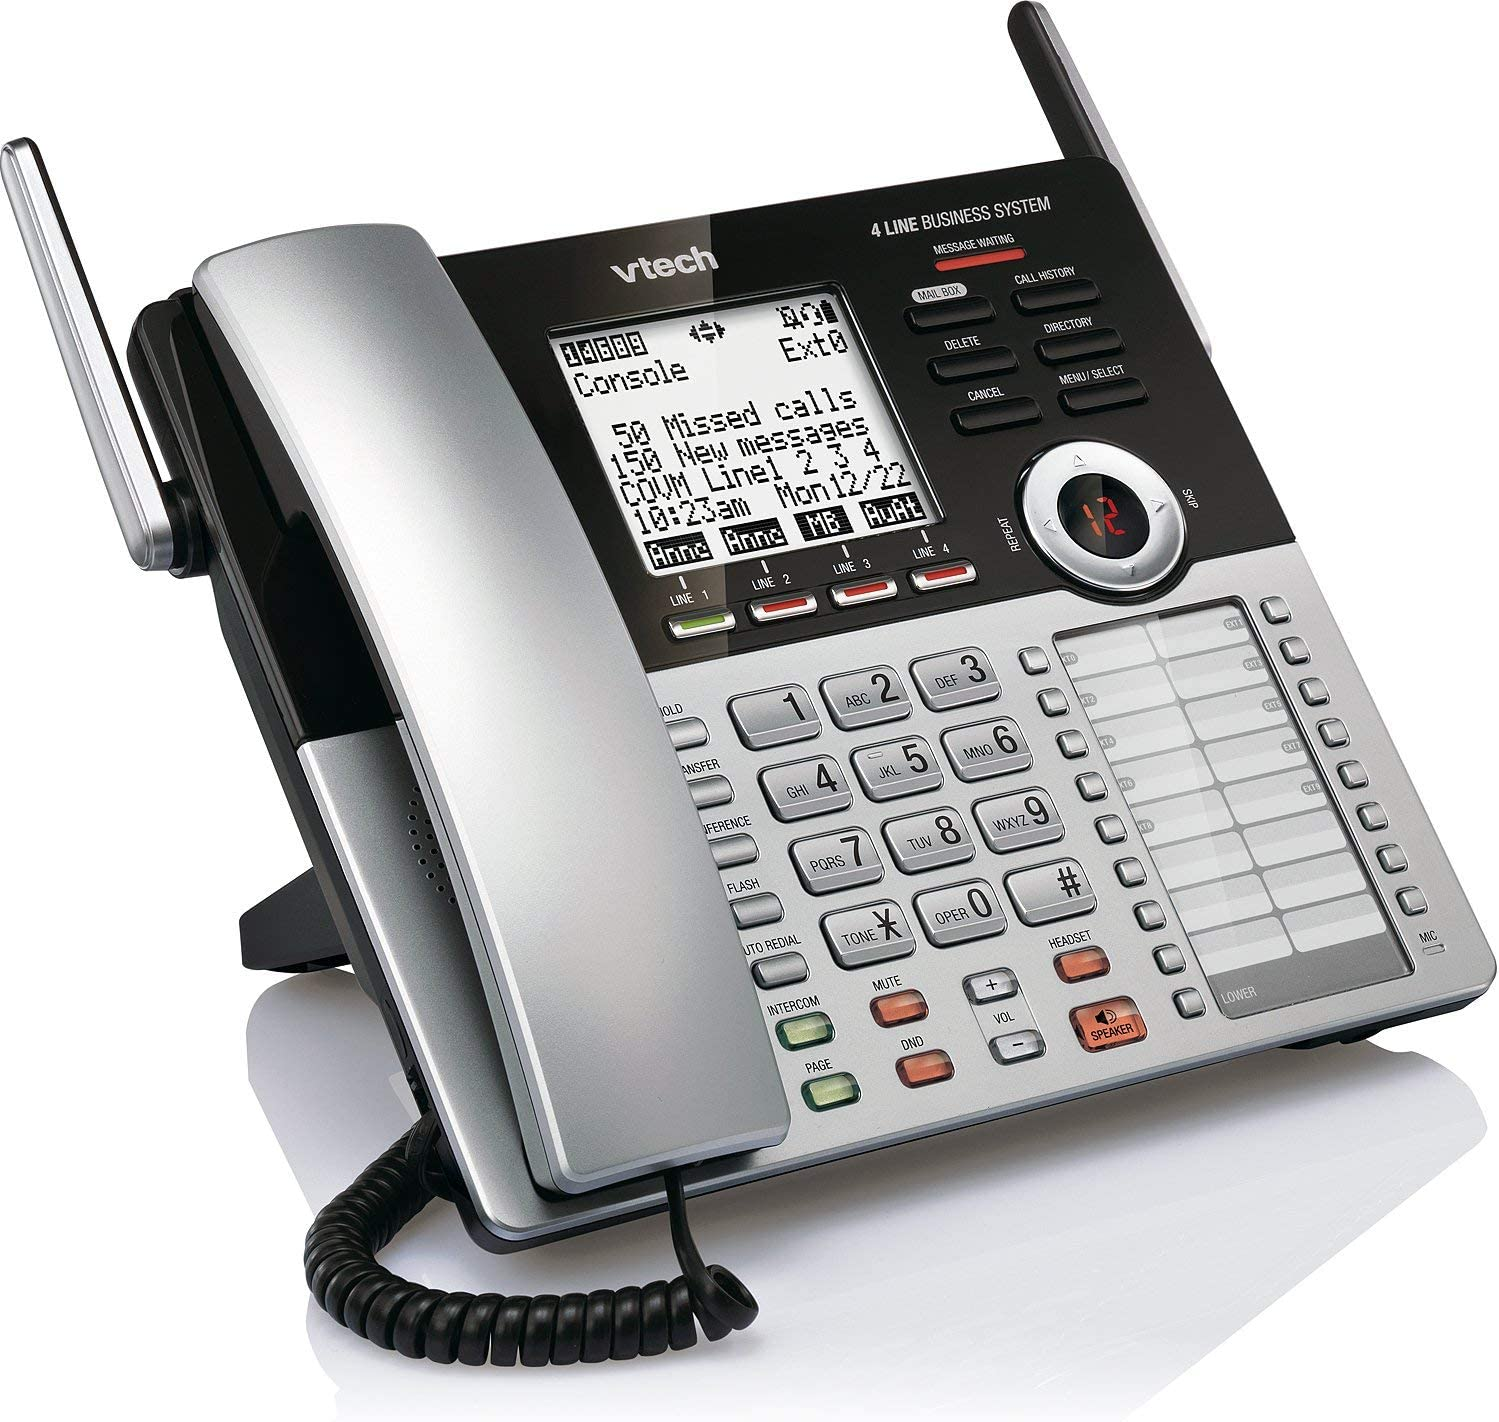 VTech CM18445 Main Console - DECT 6.0 4-Line Expandable Small Business Office Phone with Answering System (Renewed)